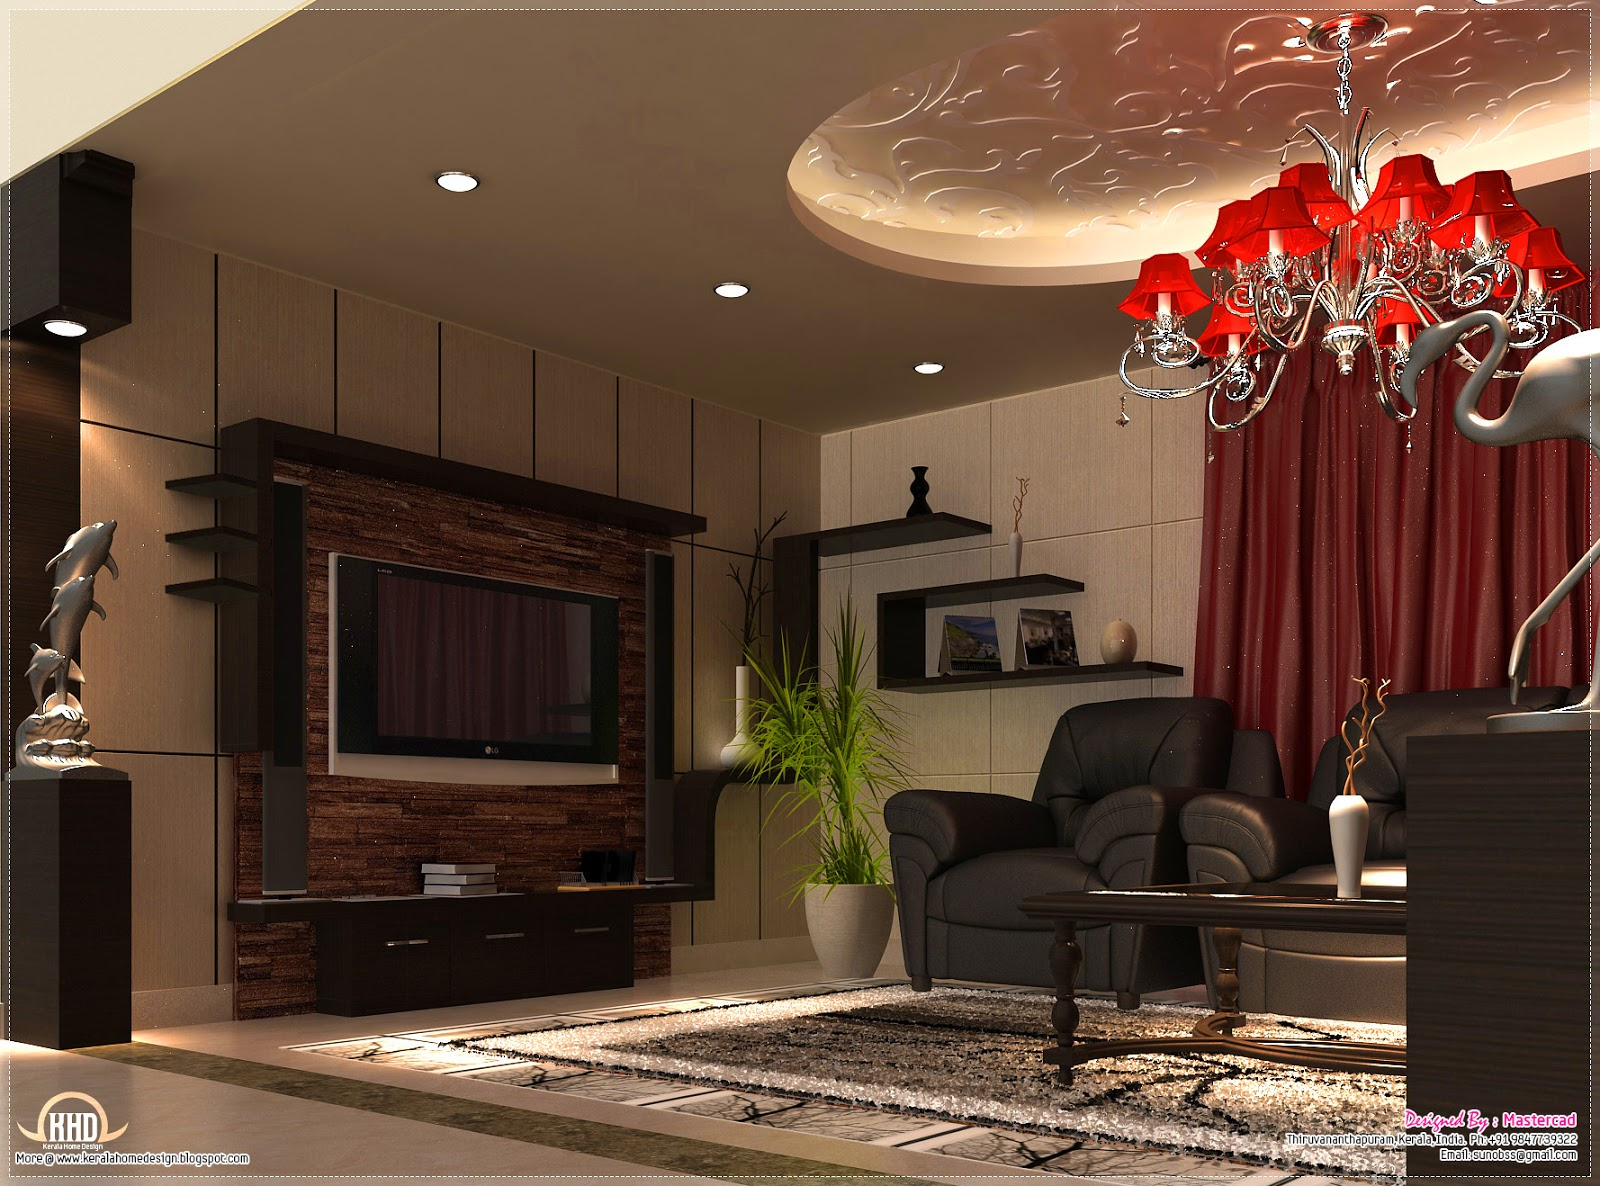 Interior design ideas kerala home design and floor plans for Kerala home interior designs photos